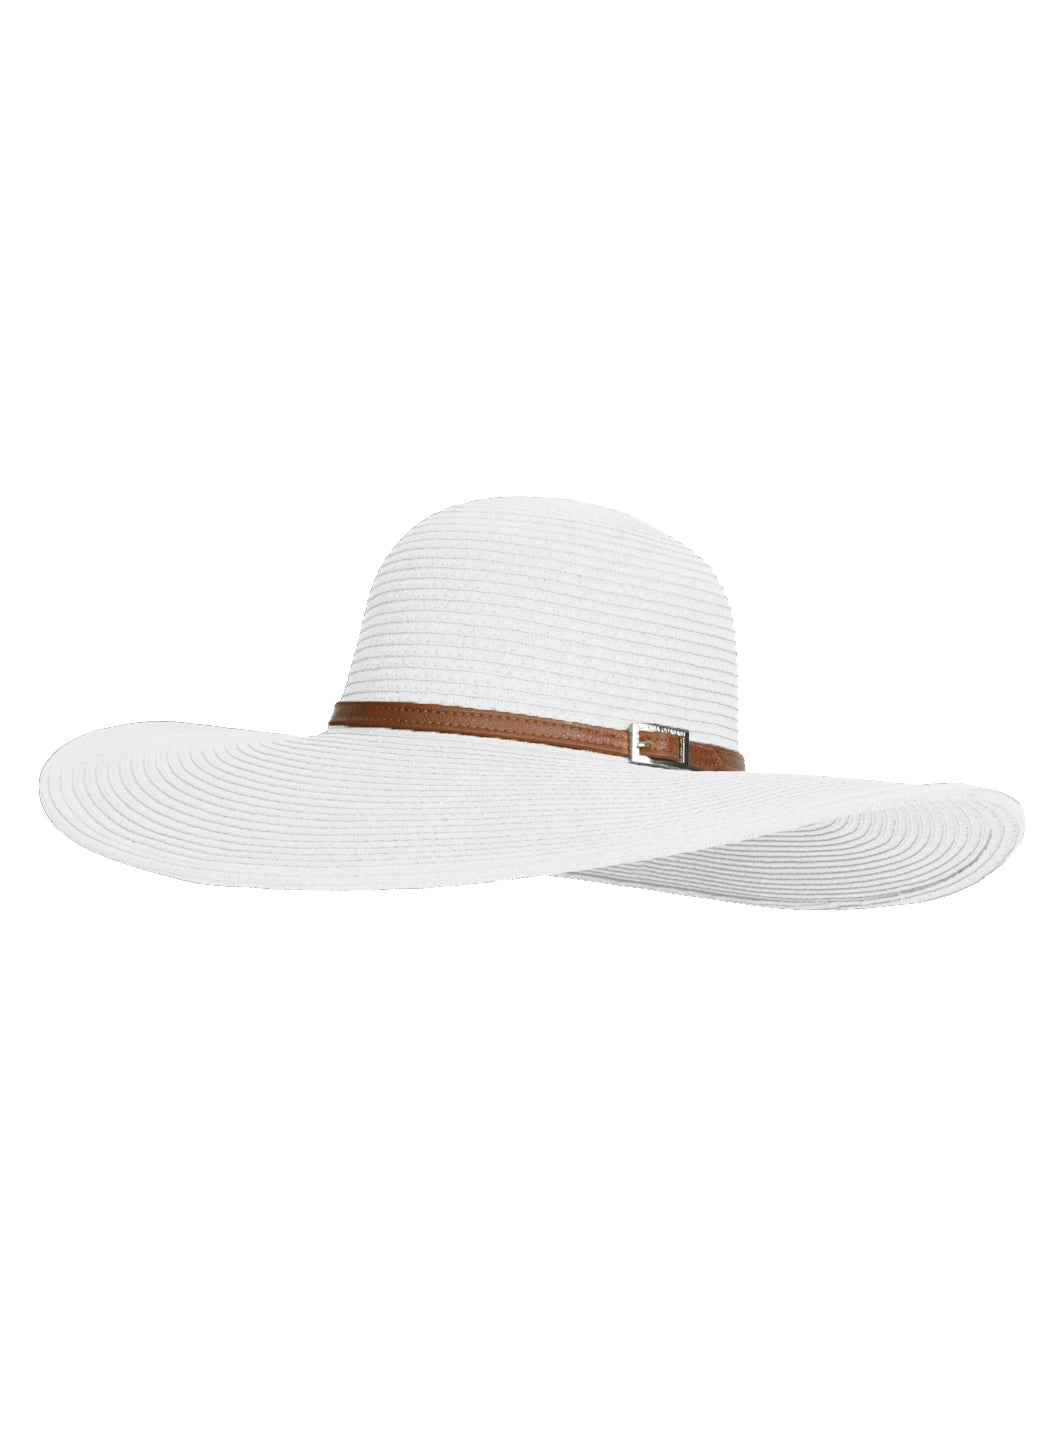 Melissa Odabash Jemima Wide Brim Beach Hat White - Melissa Odabash Accessories